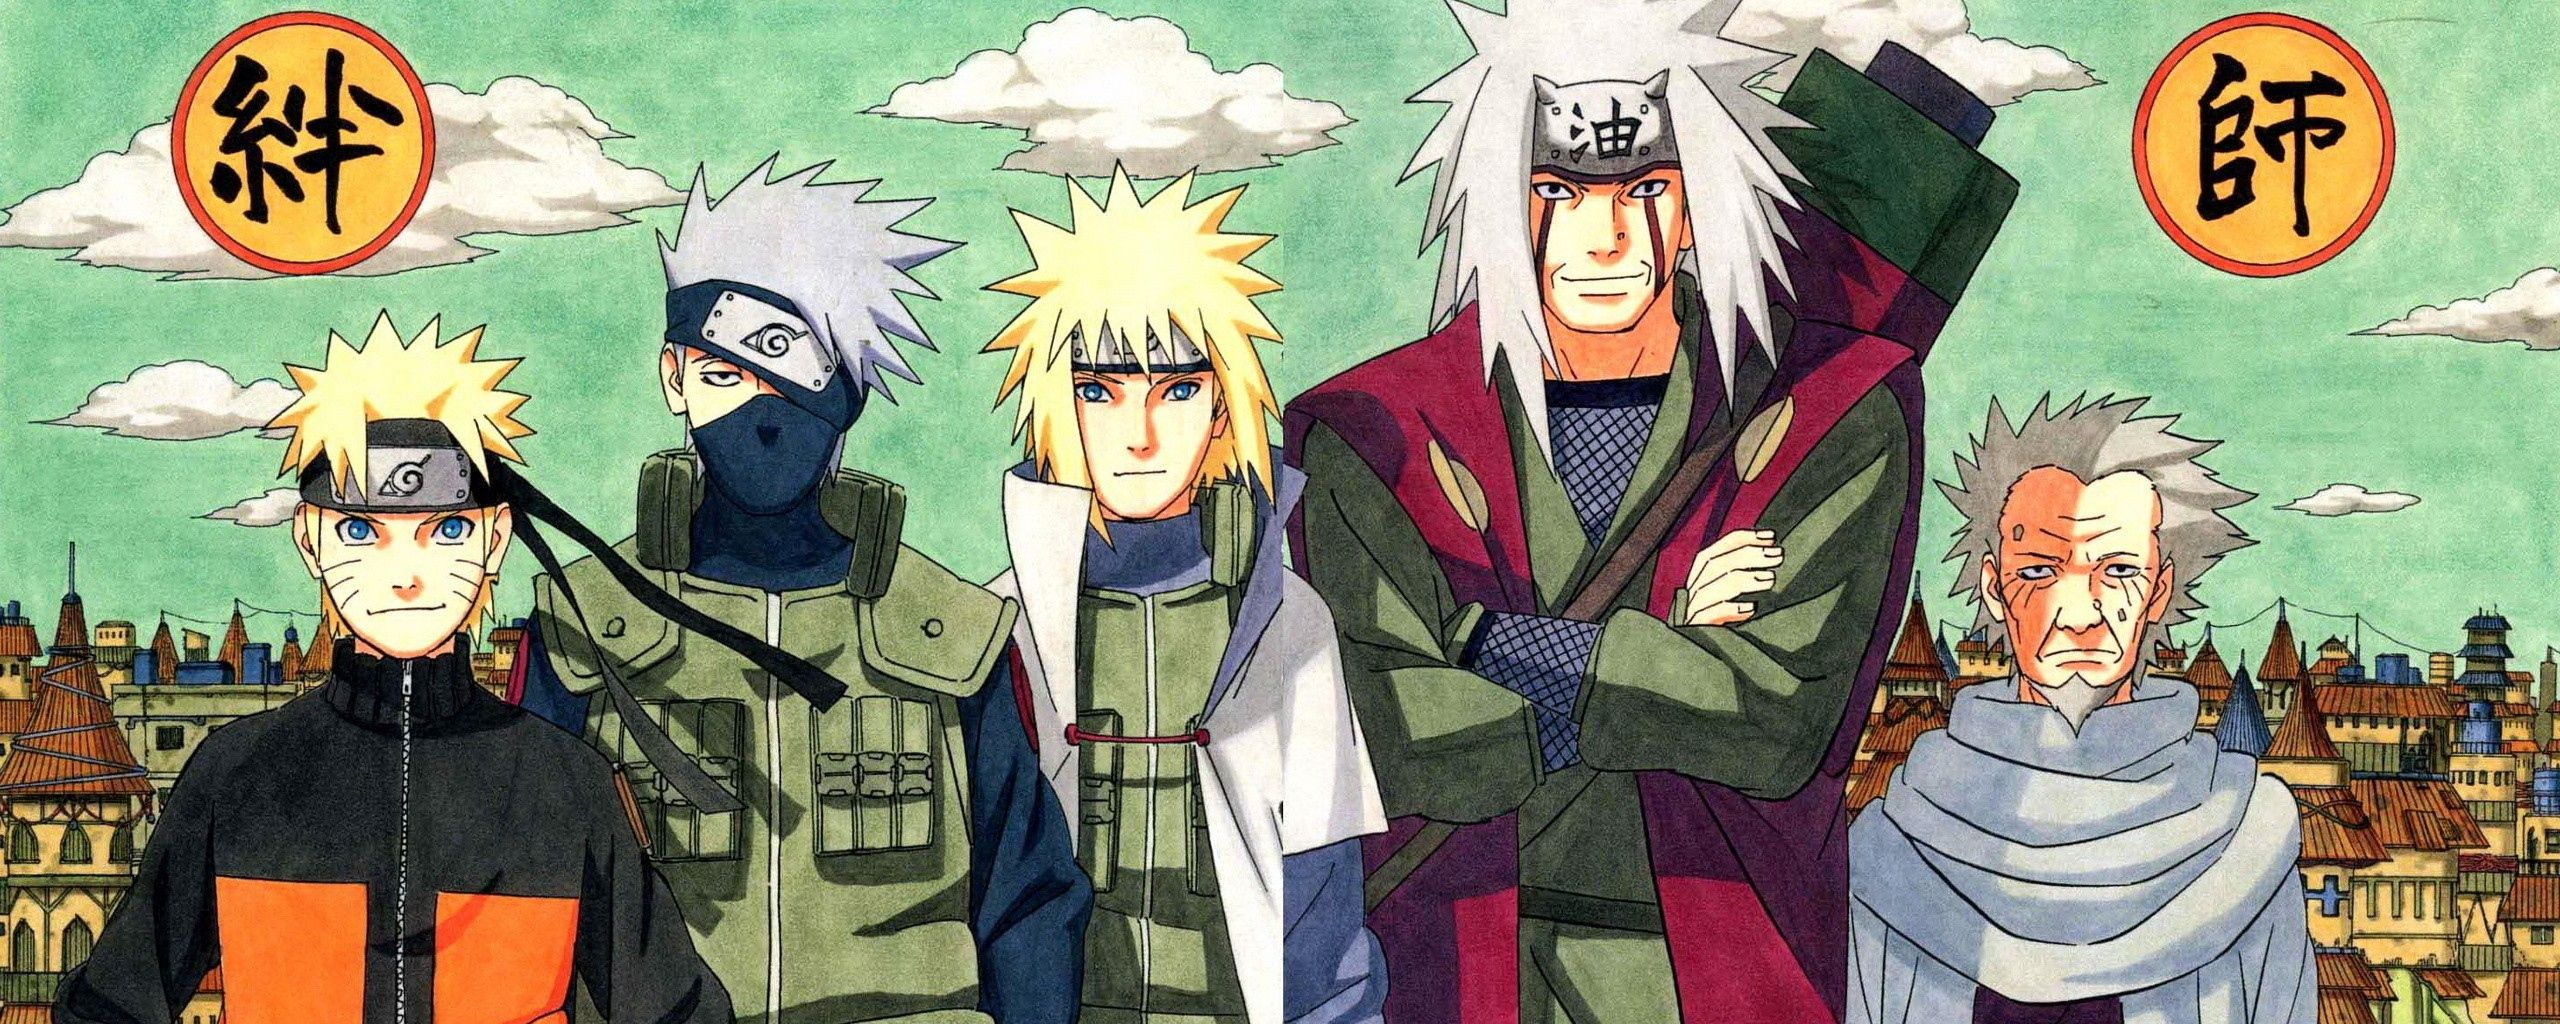 3840x1080 Wallpaper Naruto